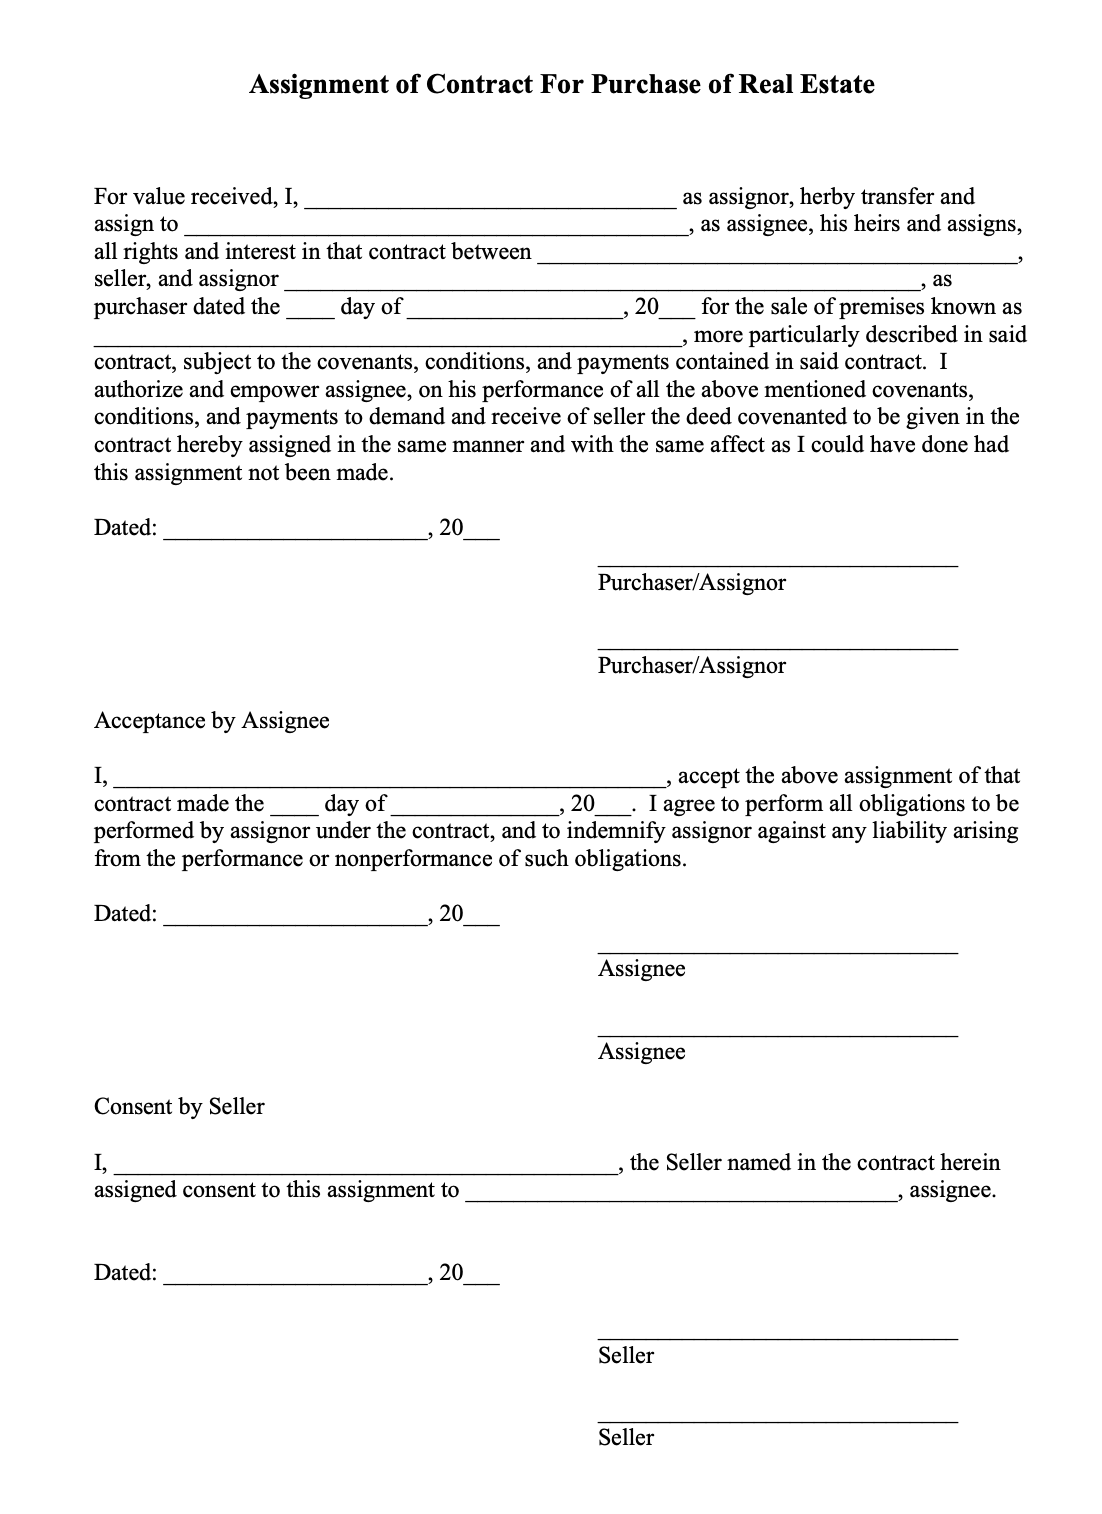 Mississippi real estate contracts